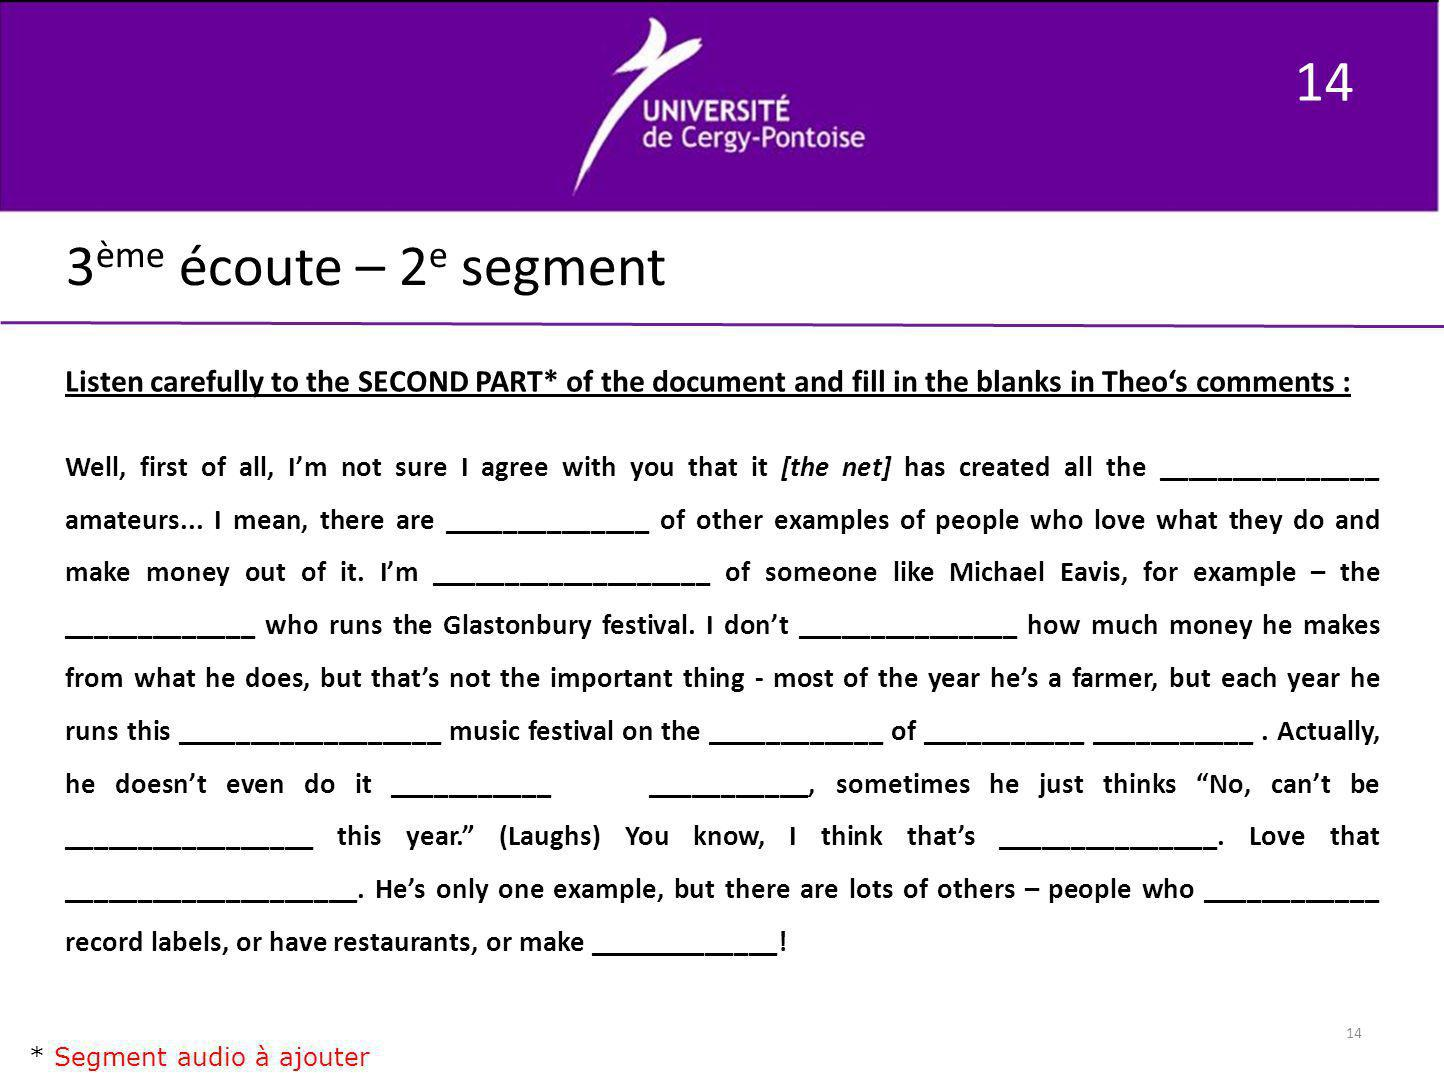 14 3ème écoute – 2e segment. Listen carefully to the SECOND PART* of the document and fill in the blanks in Theo's comments :